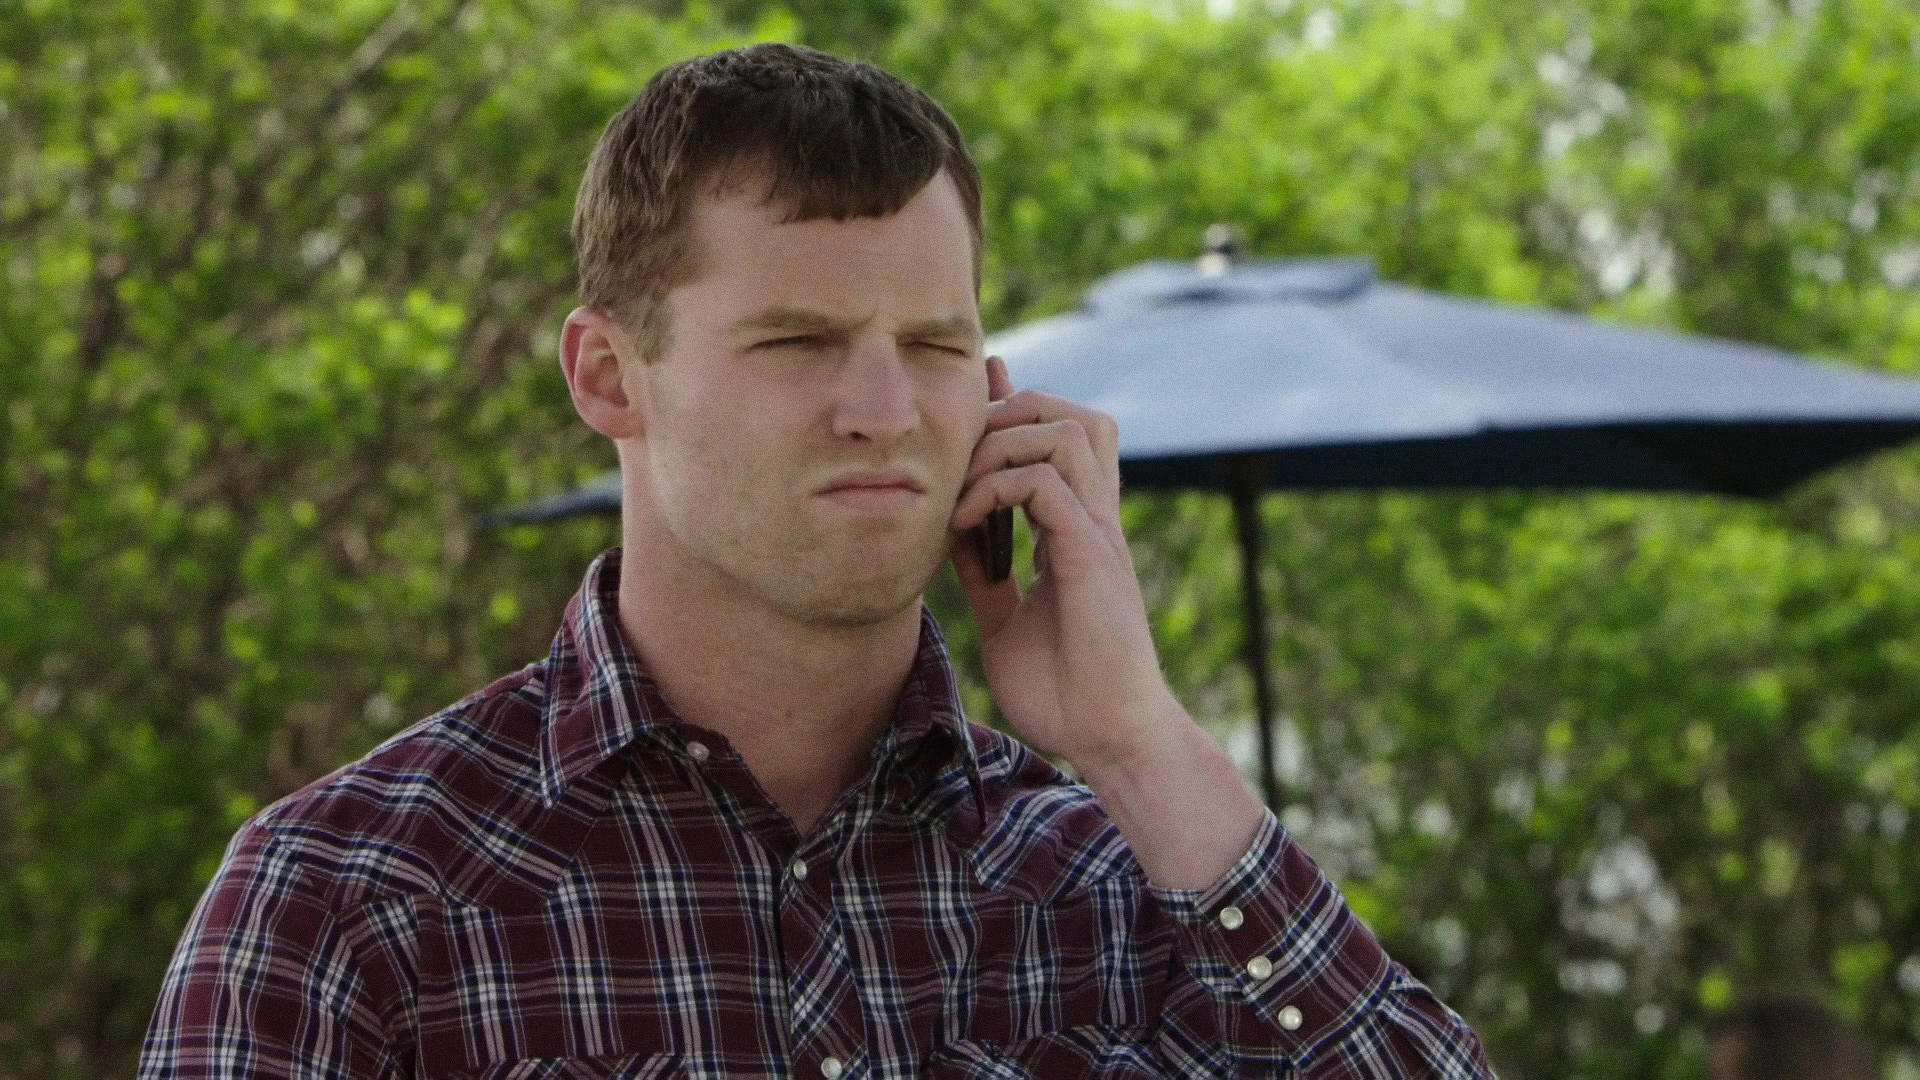 relationships summary letterkenny season 2 episode 3 episode guide